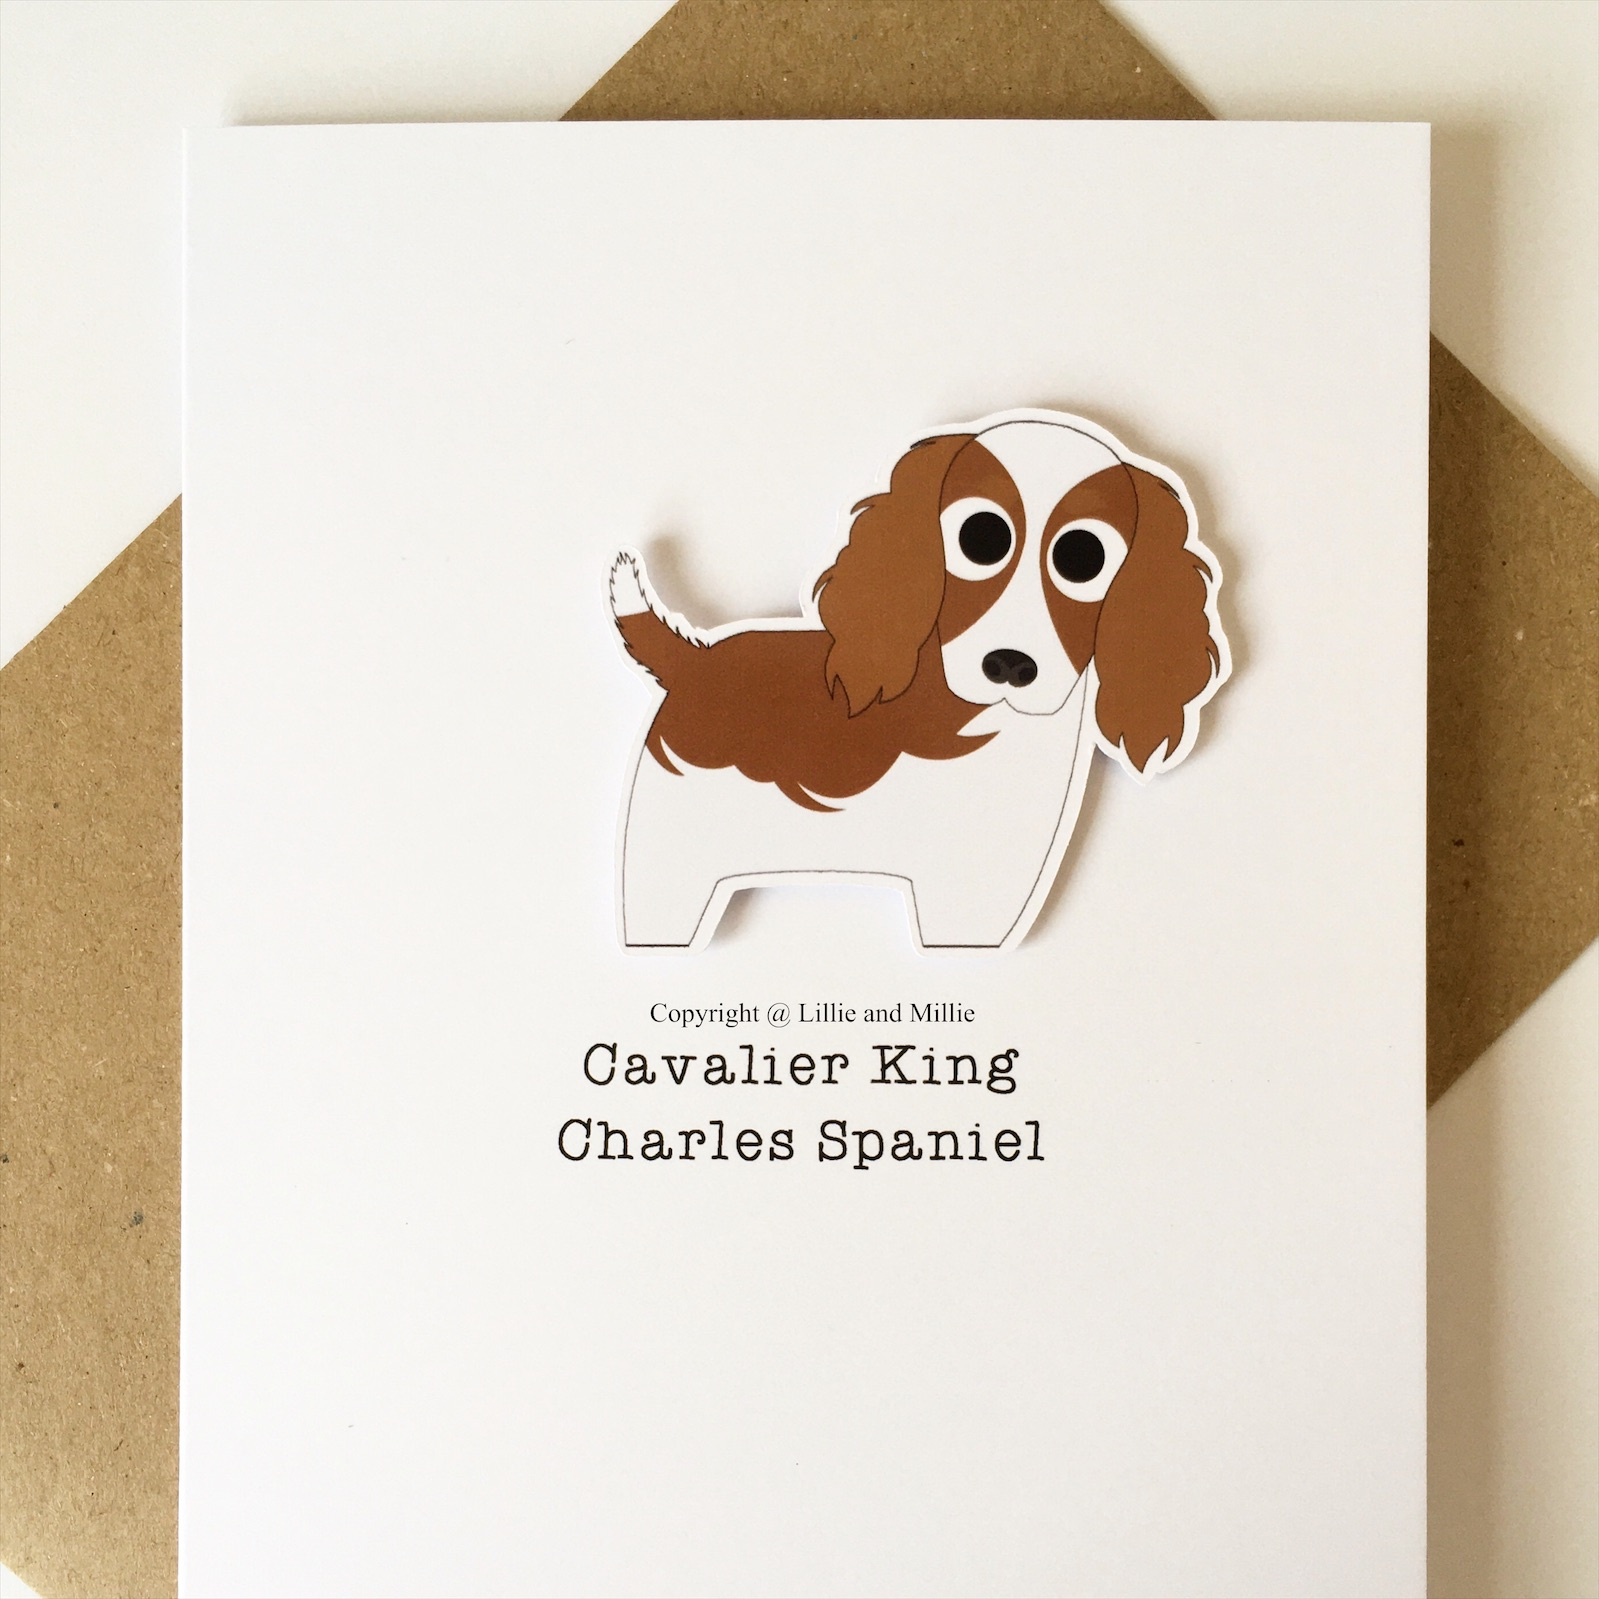 Cute and Cuddly Cavalier King Charles Spaniel Card